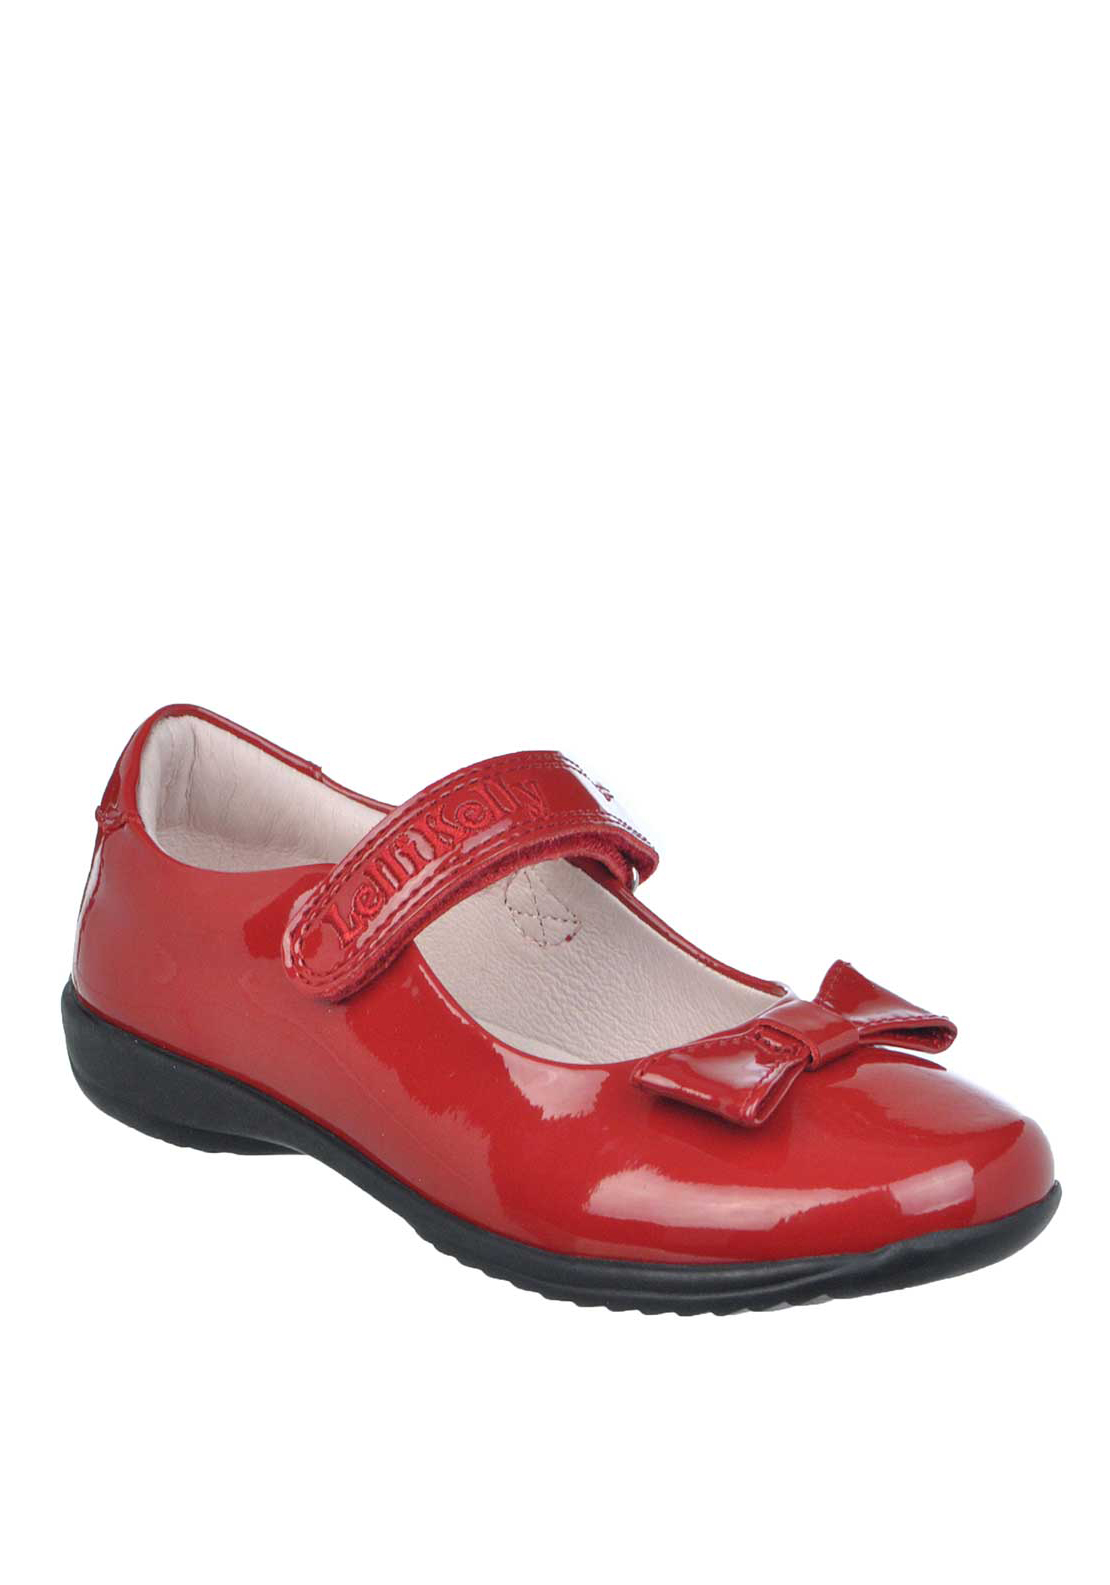 Lelli Kelly Girls Patent Leather Mary Jane School Shoes, Red